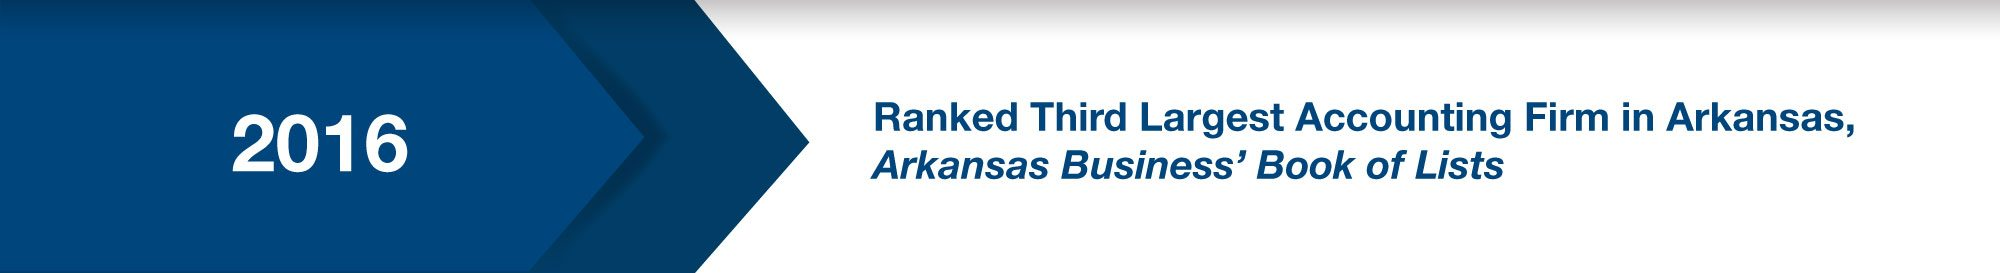 Ranked Third Largest Accounting Firm in Arkansas, Arkansas Business' Book of Lists (2016)